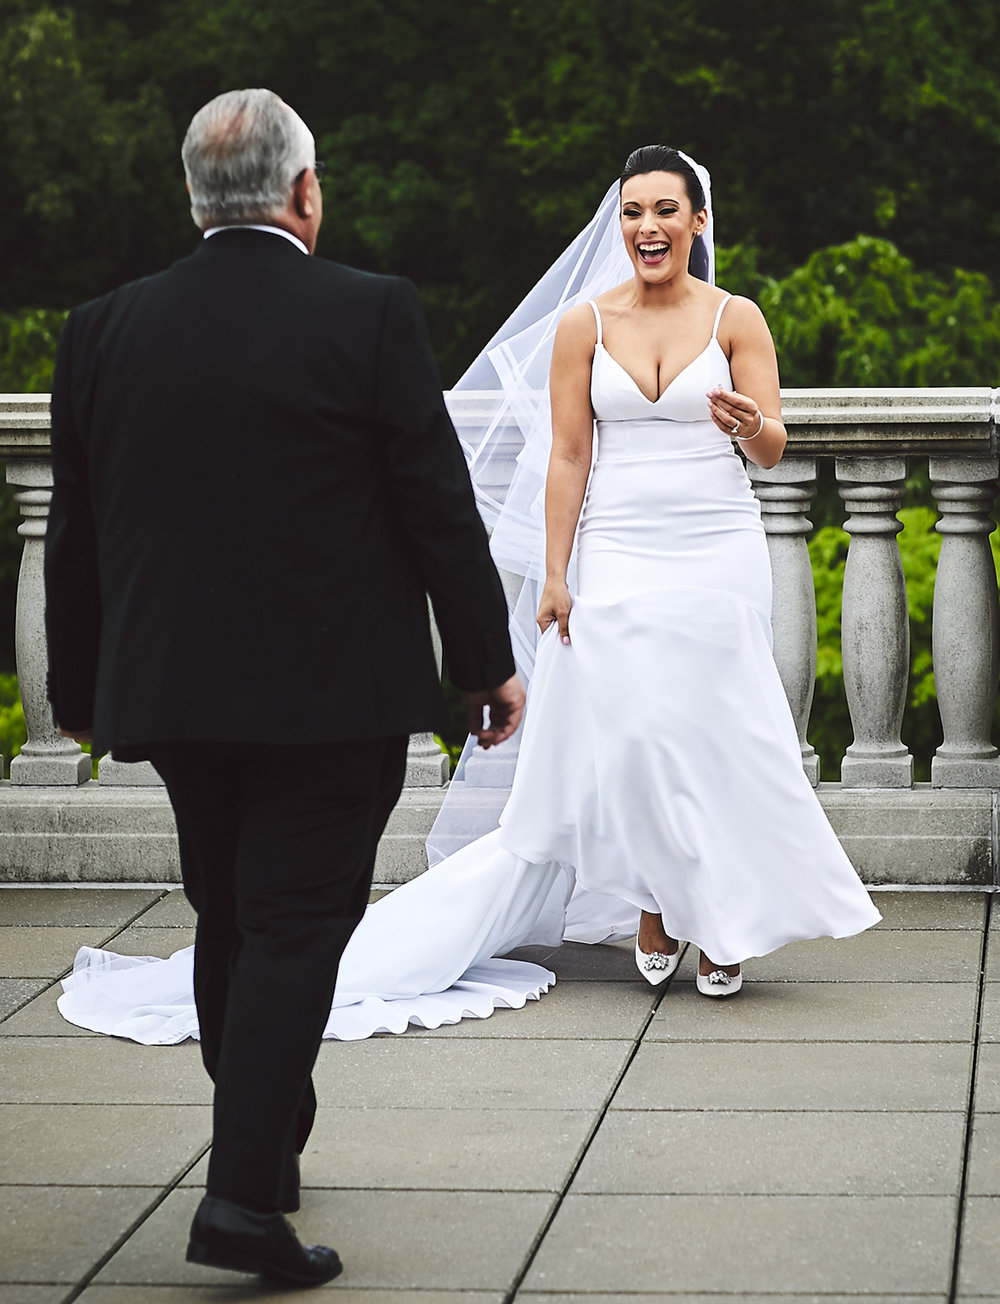 180519_PalaceatSomersetParkWeddingPhotography_NJWeddingPhotographer_By_BriJohnsonWeddings_0049.jpg